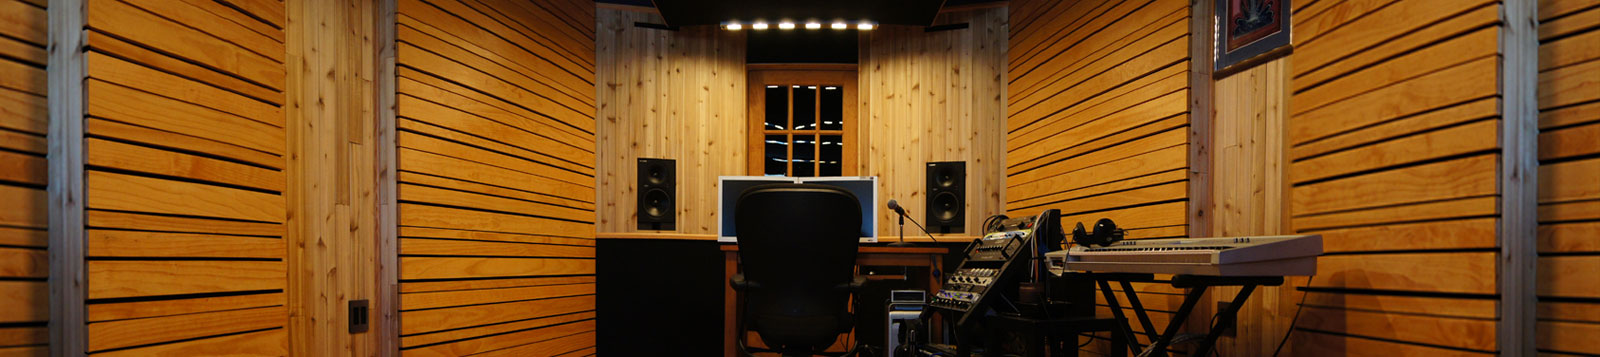 nj hip hop recording studio with beats for sale